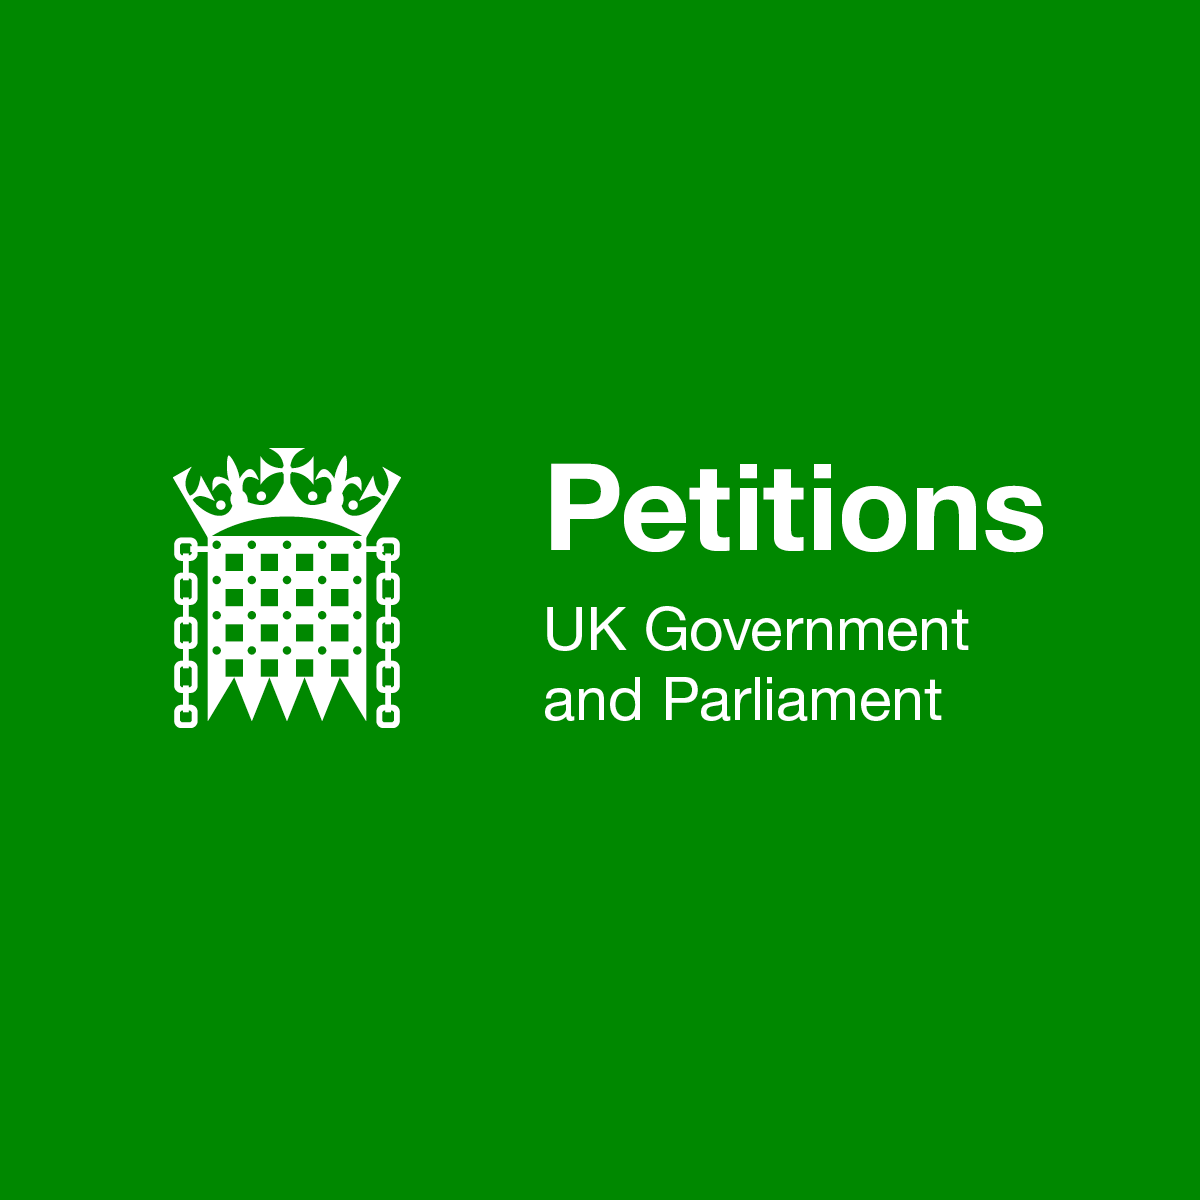 Petitions - UK Government and Parliament